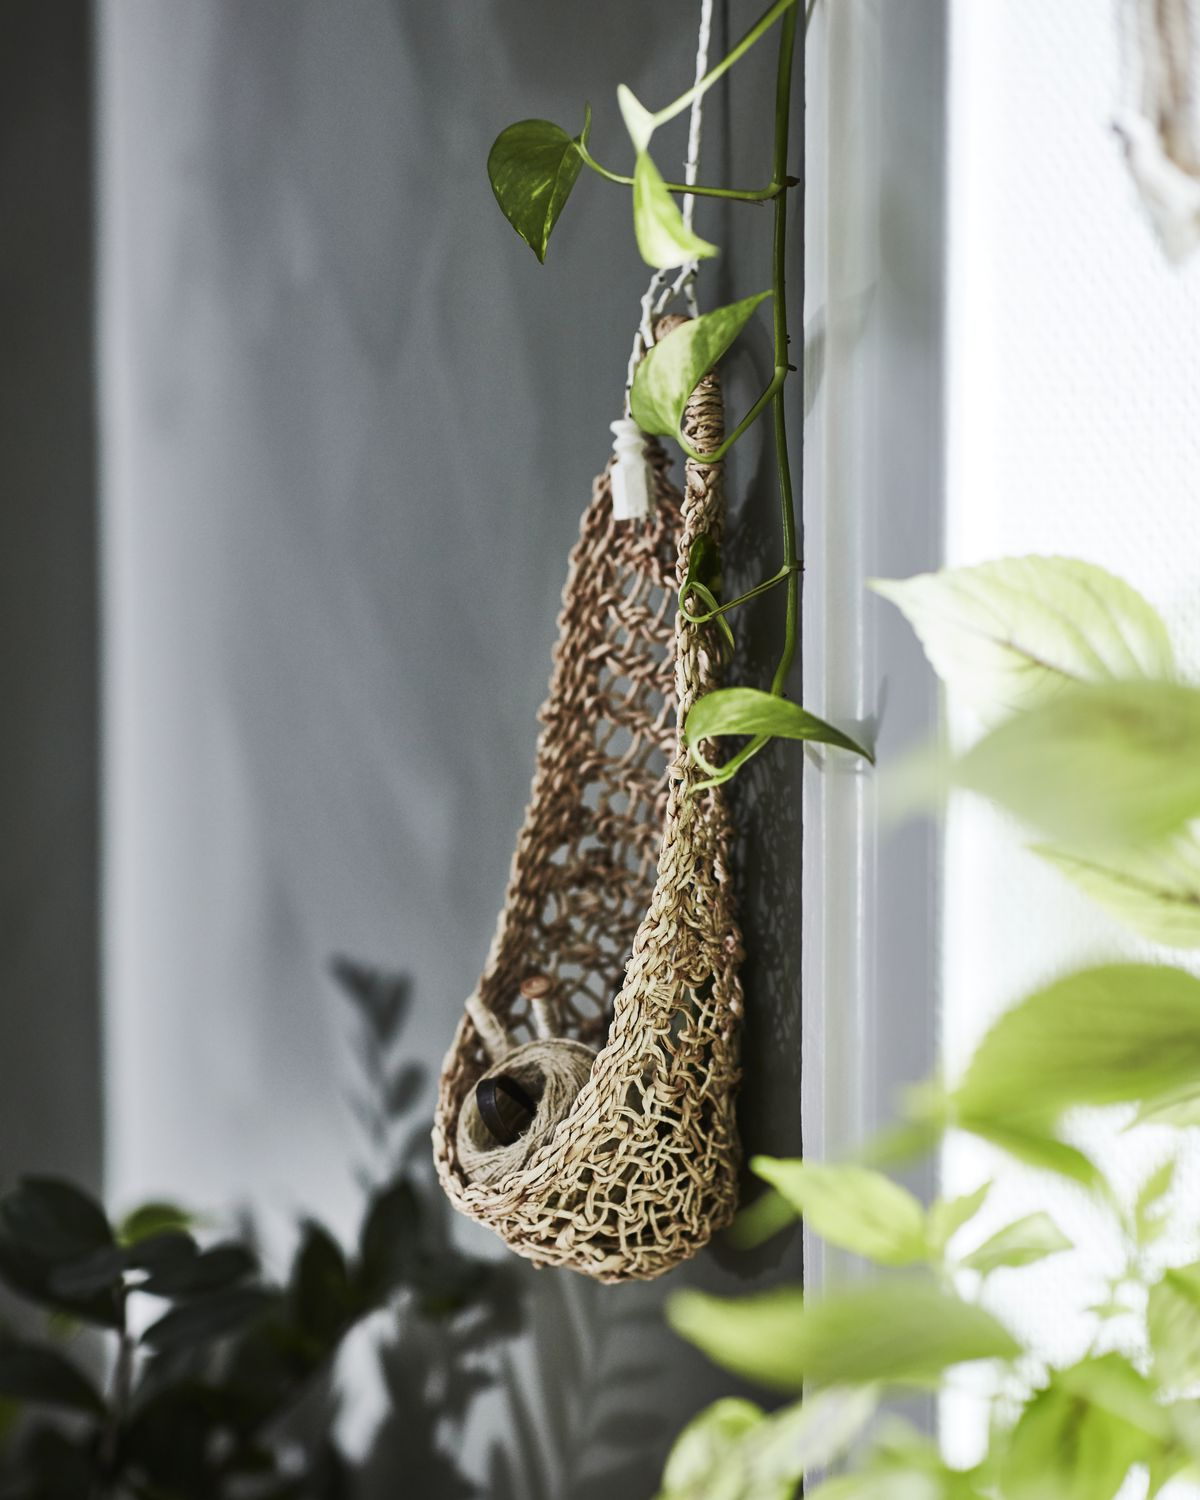 Woven basket hanging from wall.